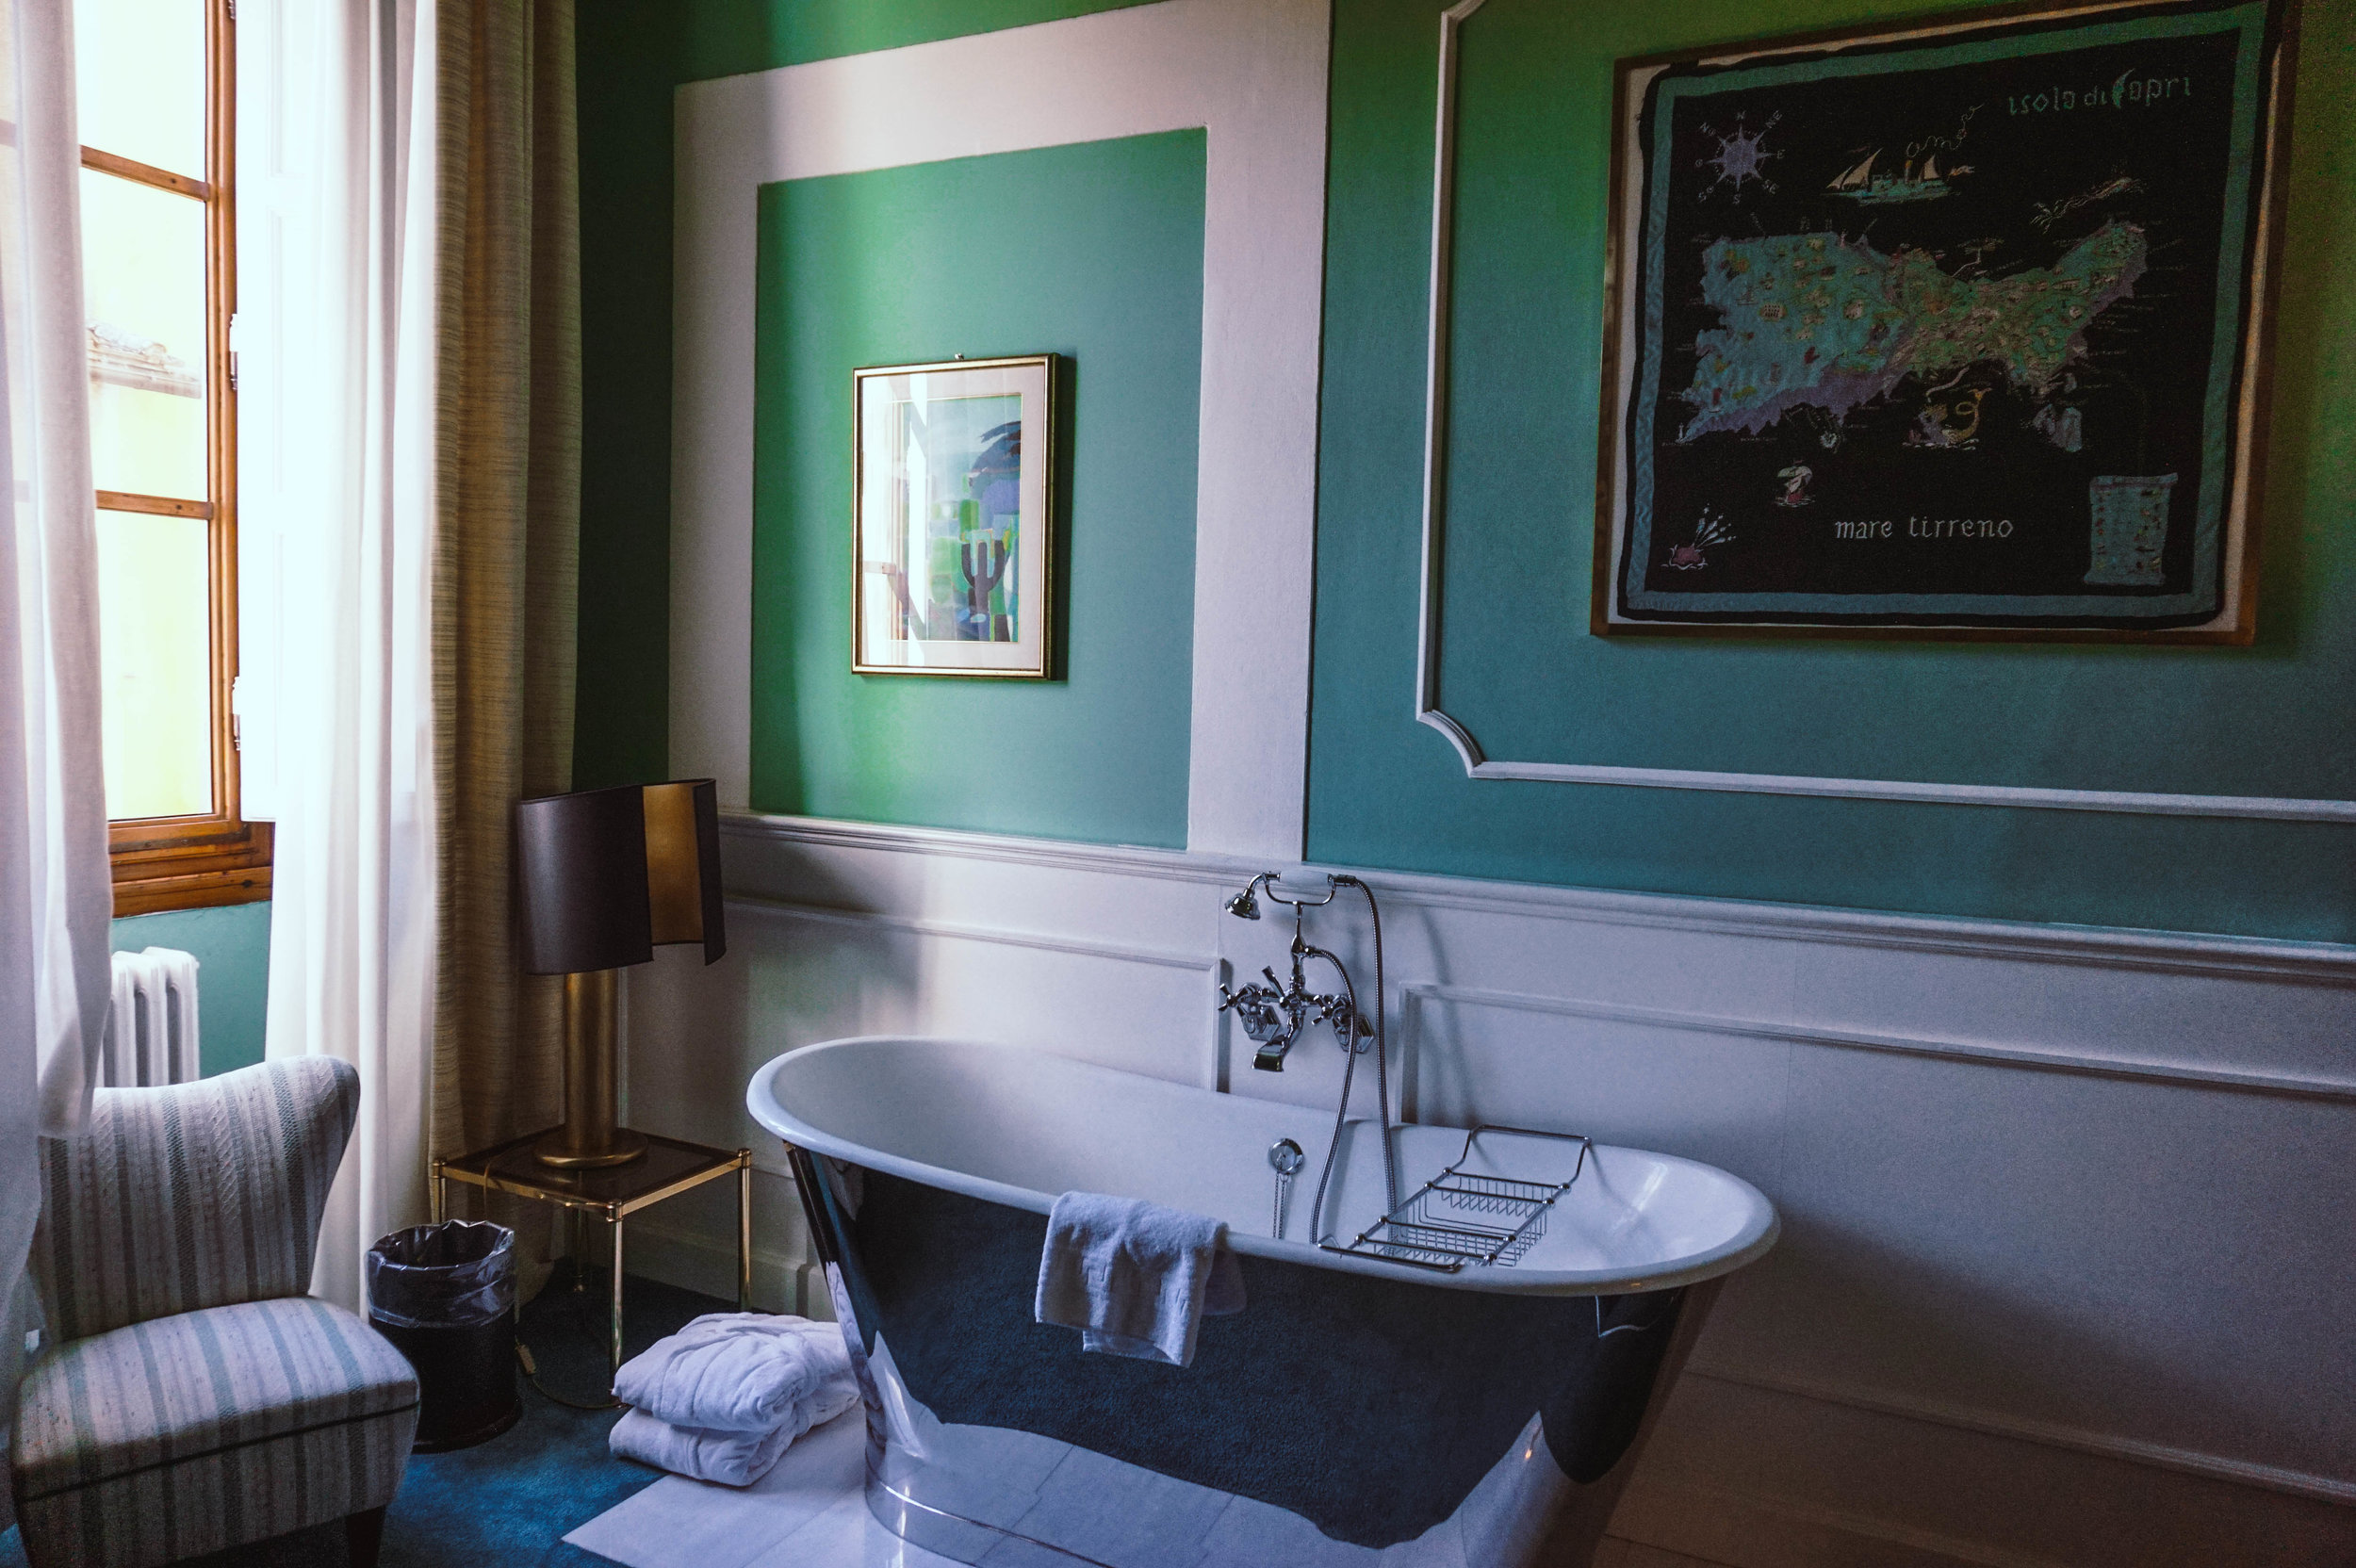 Our room at The Ad Astra Boutique Hotel in Florence